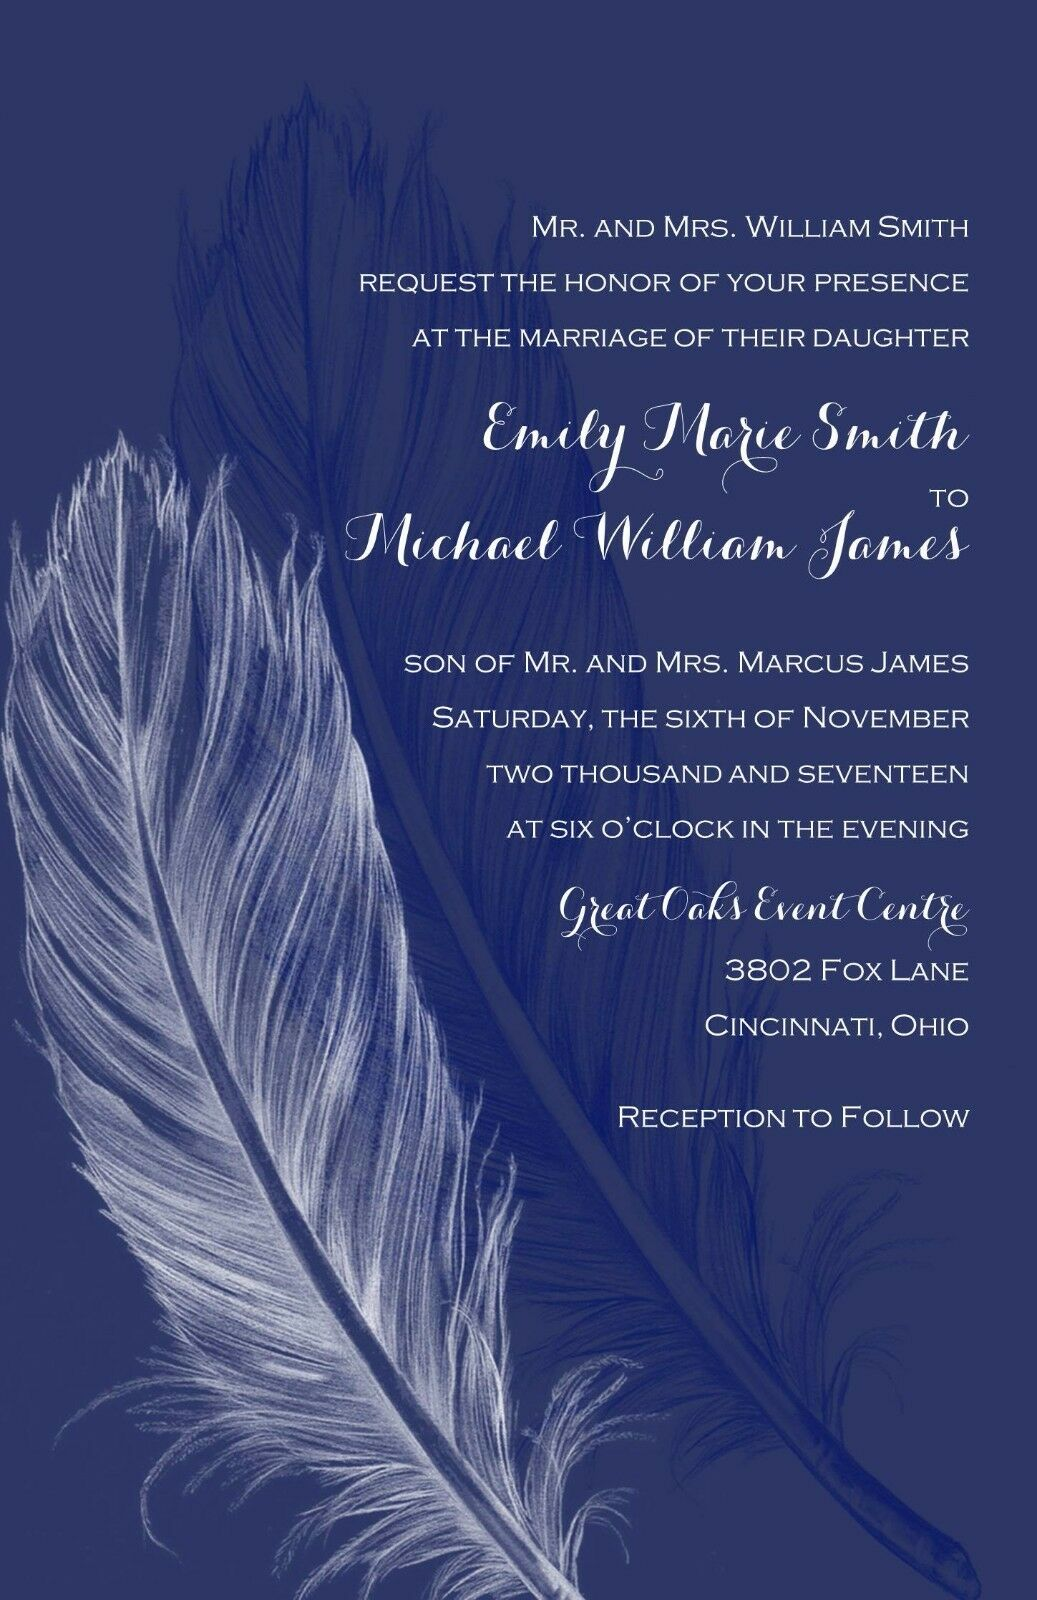 Wedding Invitations Feathers Rustic Country 50 Invitations & RSVP Cards